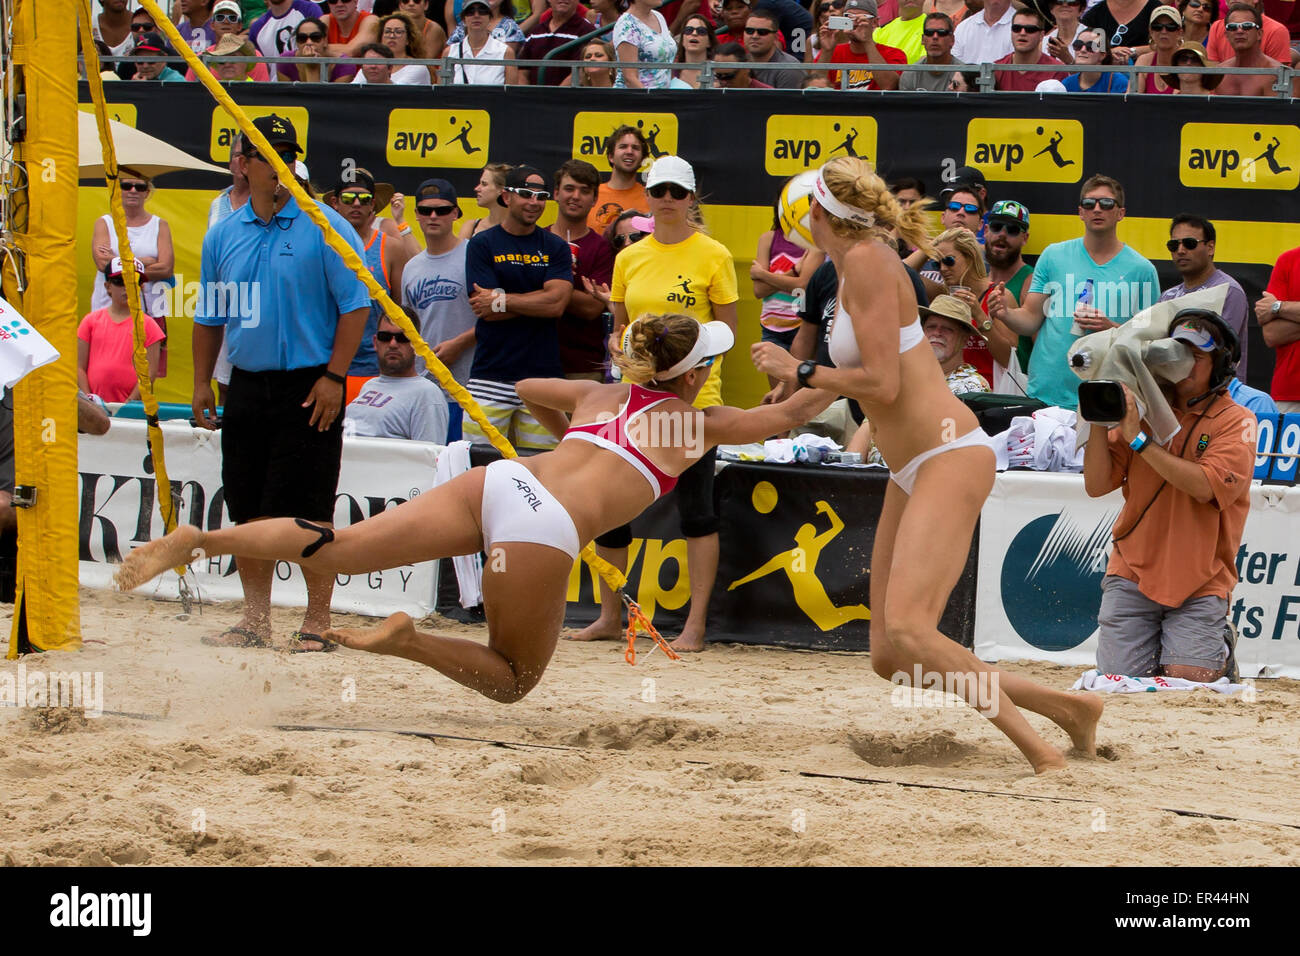 May 24, 2015 - April Ross dives to get the ball during the AVP New Orleans Open at Lake Pontchartrain in Kenner, - Stock Image